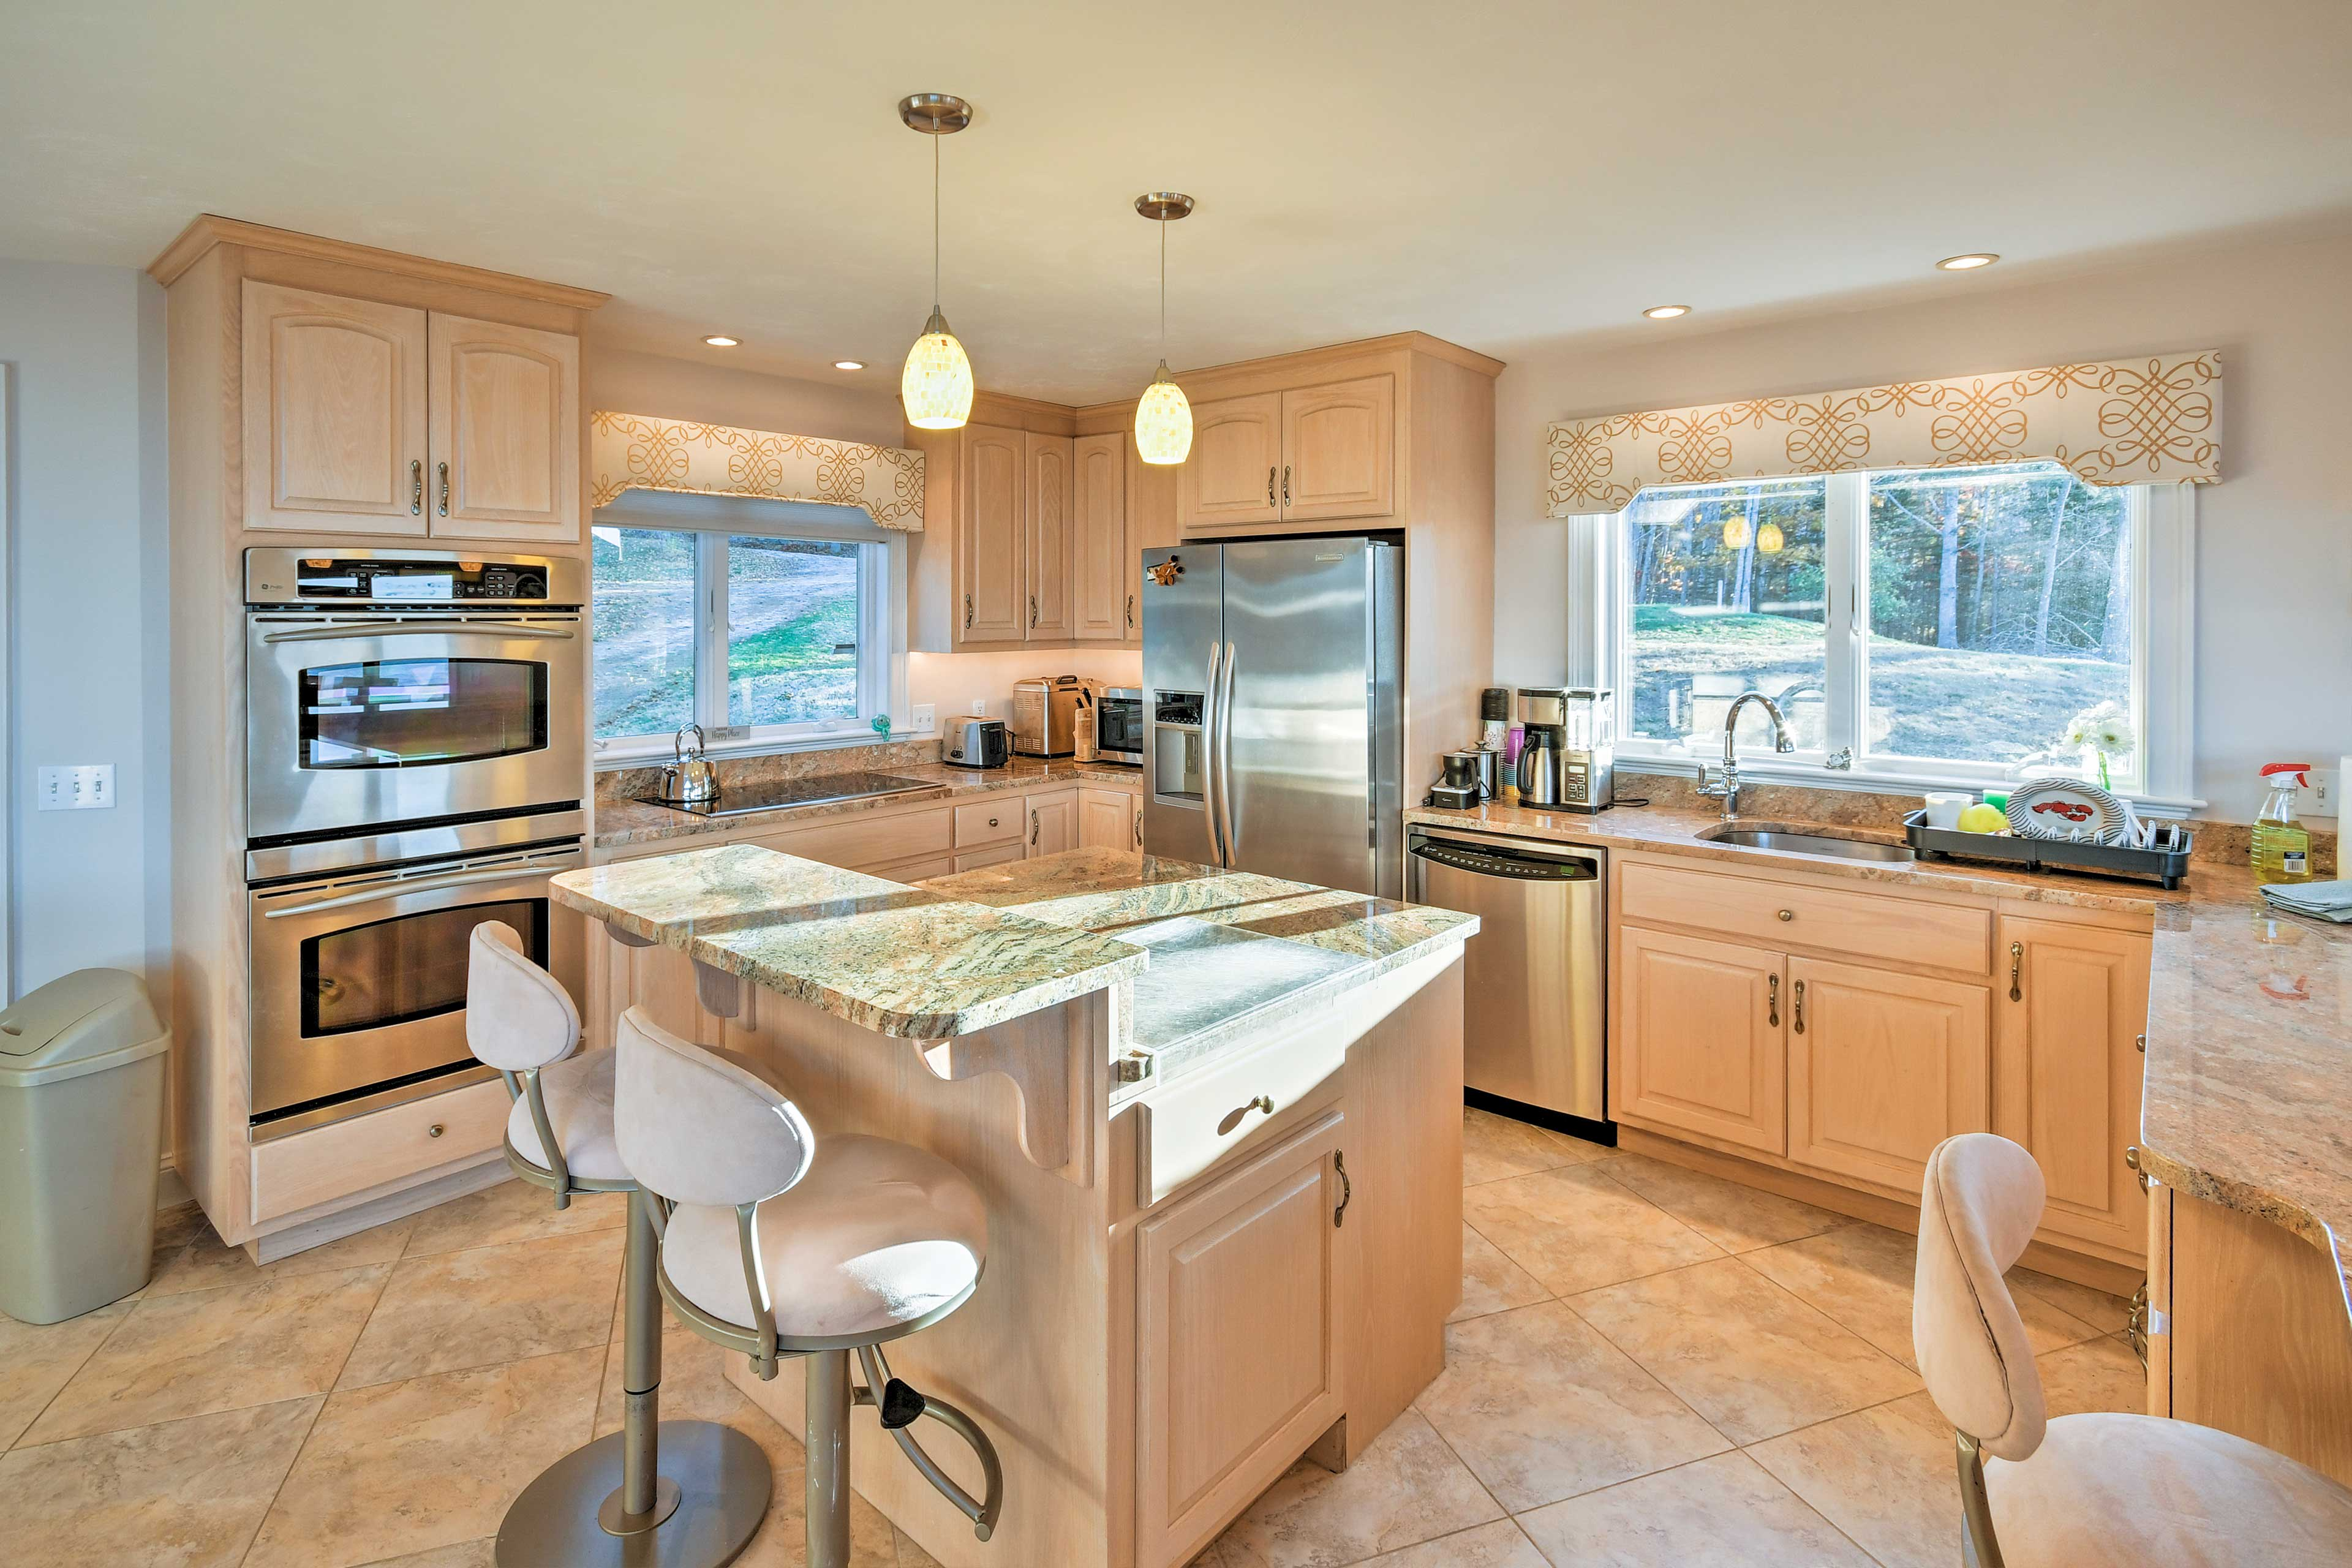 The kitchen is fully equipped - stainless steel appliances & granite counters.